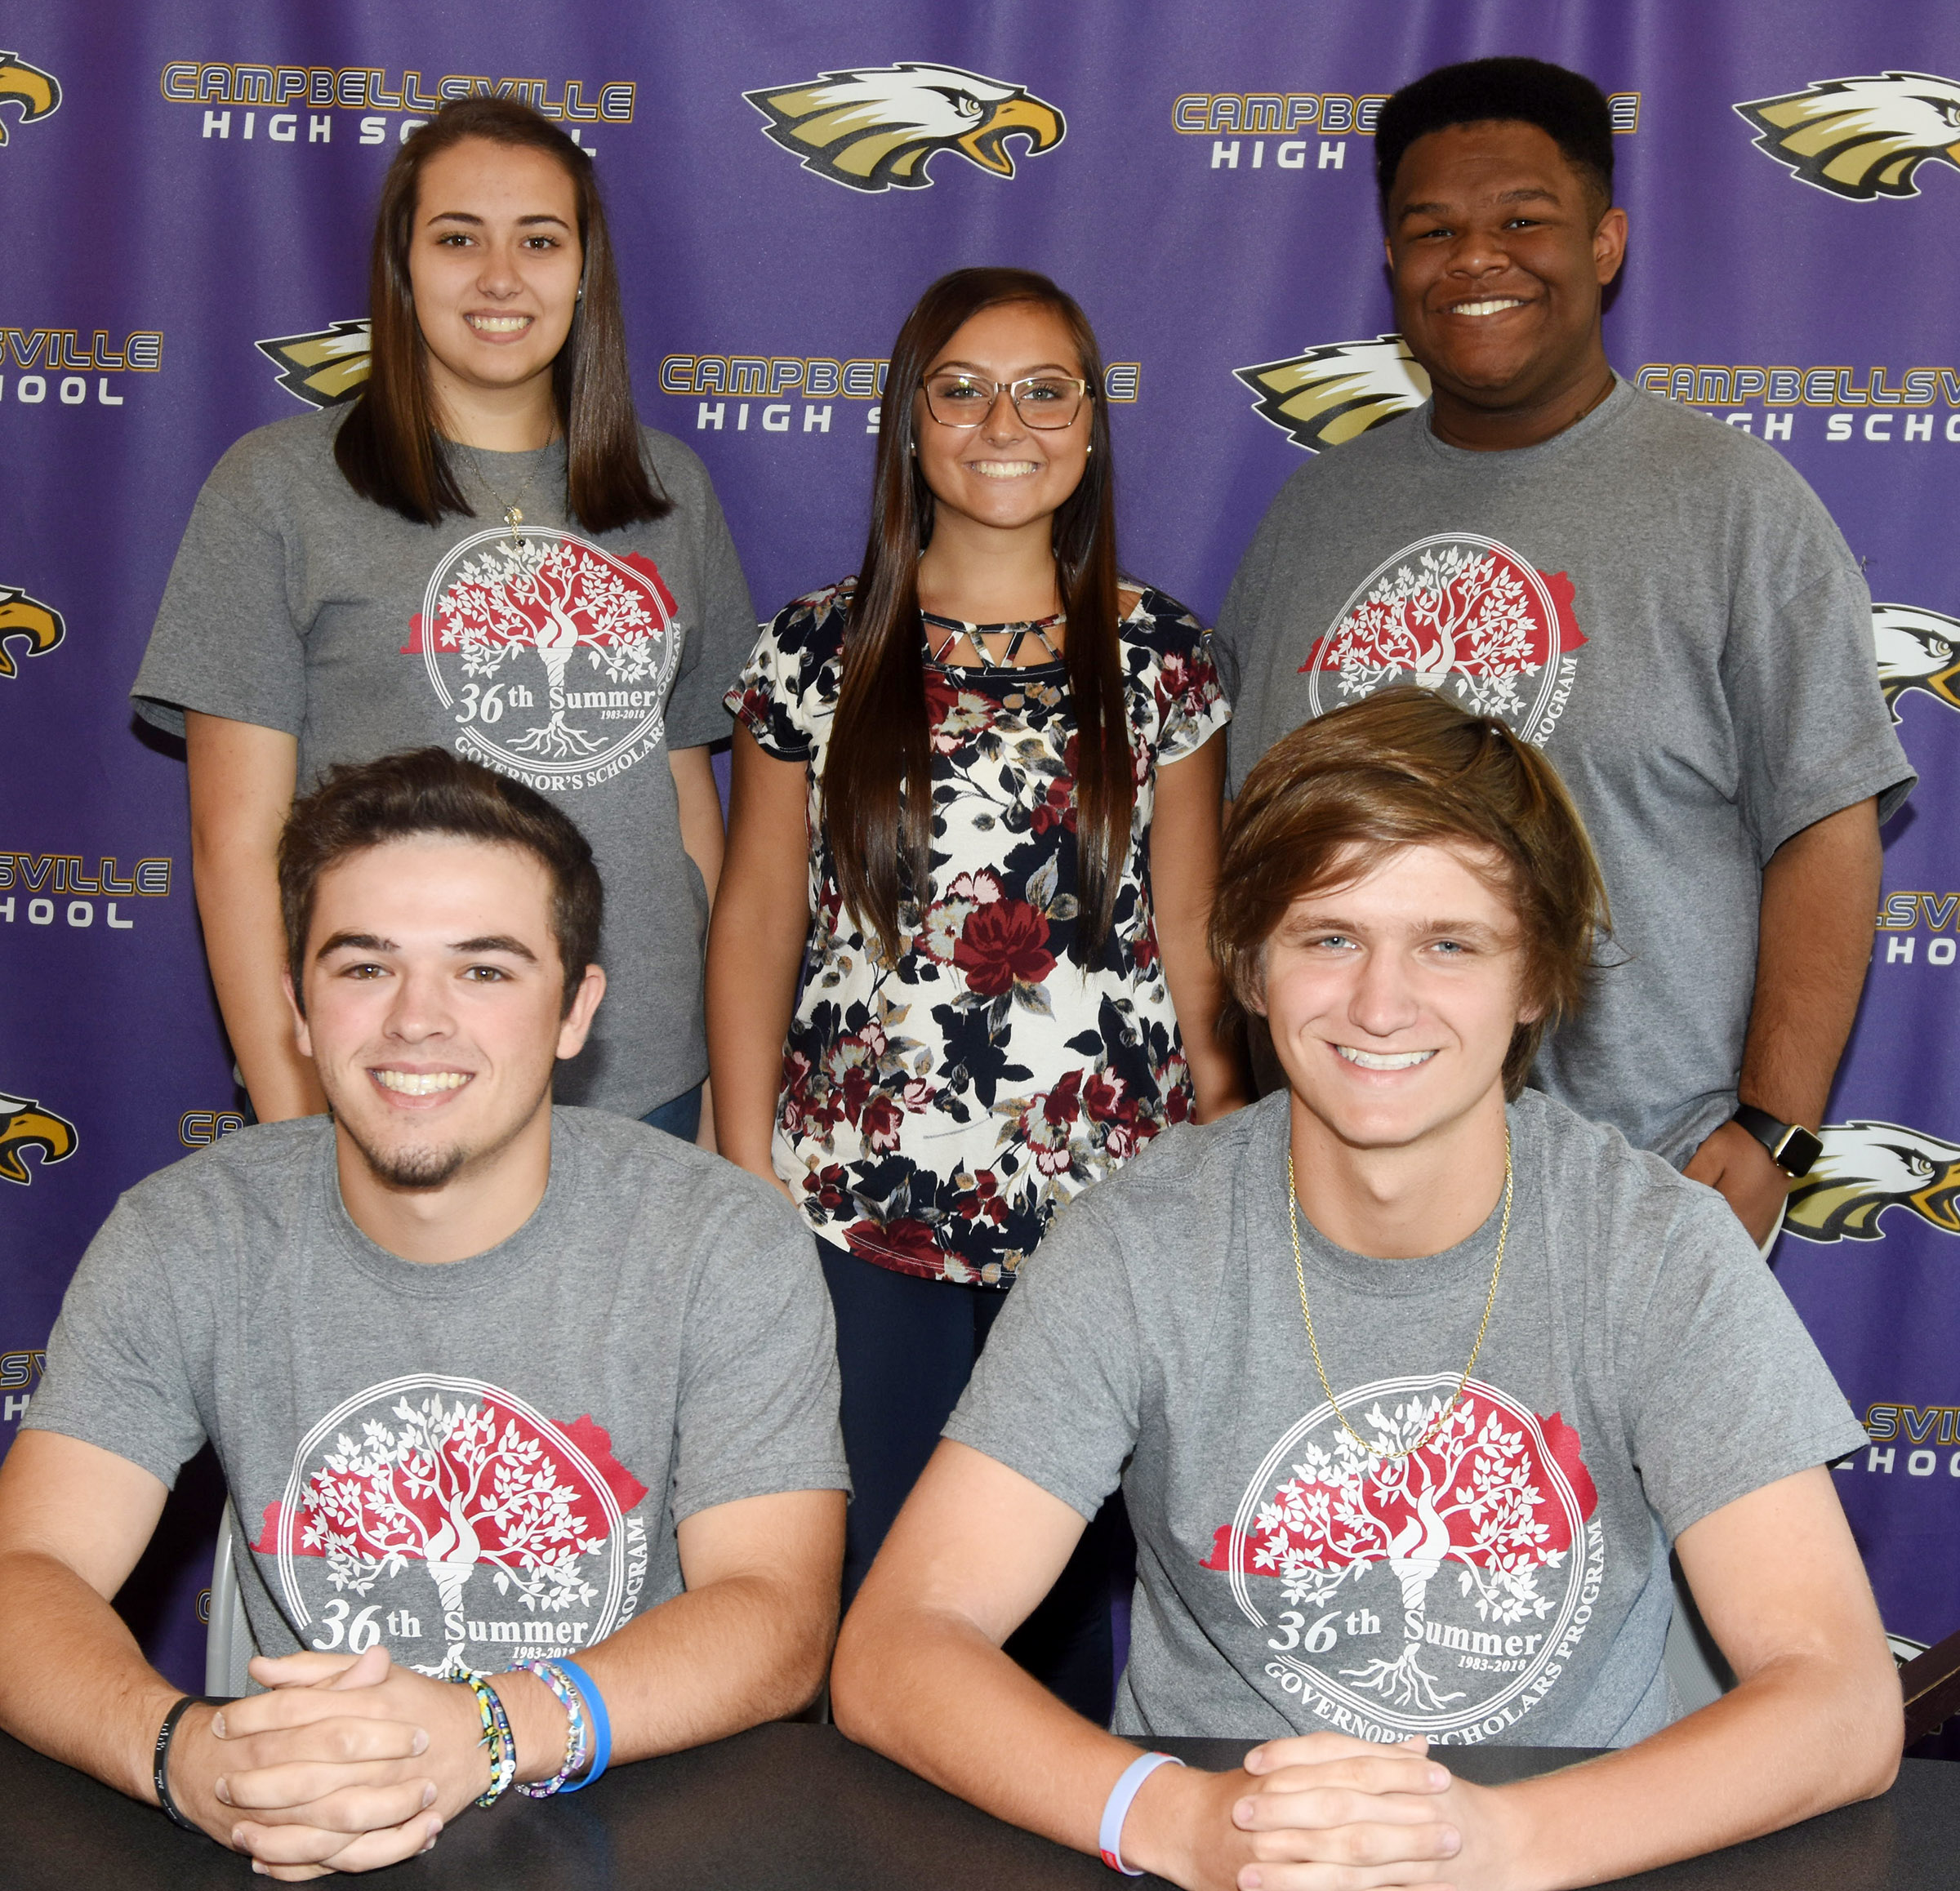 Campbellsville High School seniors, from left, front, Ryan Kearney and Myles Murrell, and, back, Elizabeth Sullivan, Reagan Knight and Jeremiah Jackson, attended the Governor's Scholars Program this summer. They say they learned a lot through the experience, and made lasting friendships and memories.